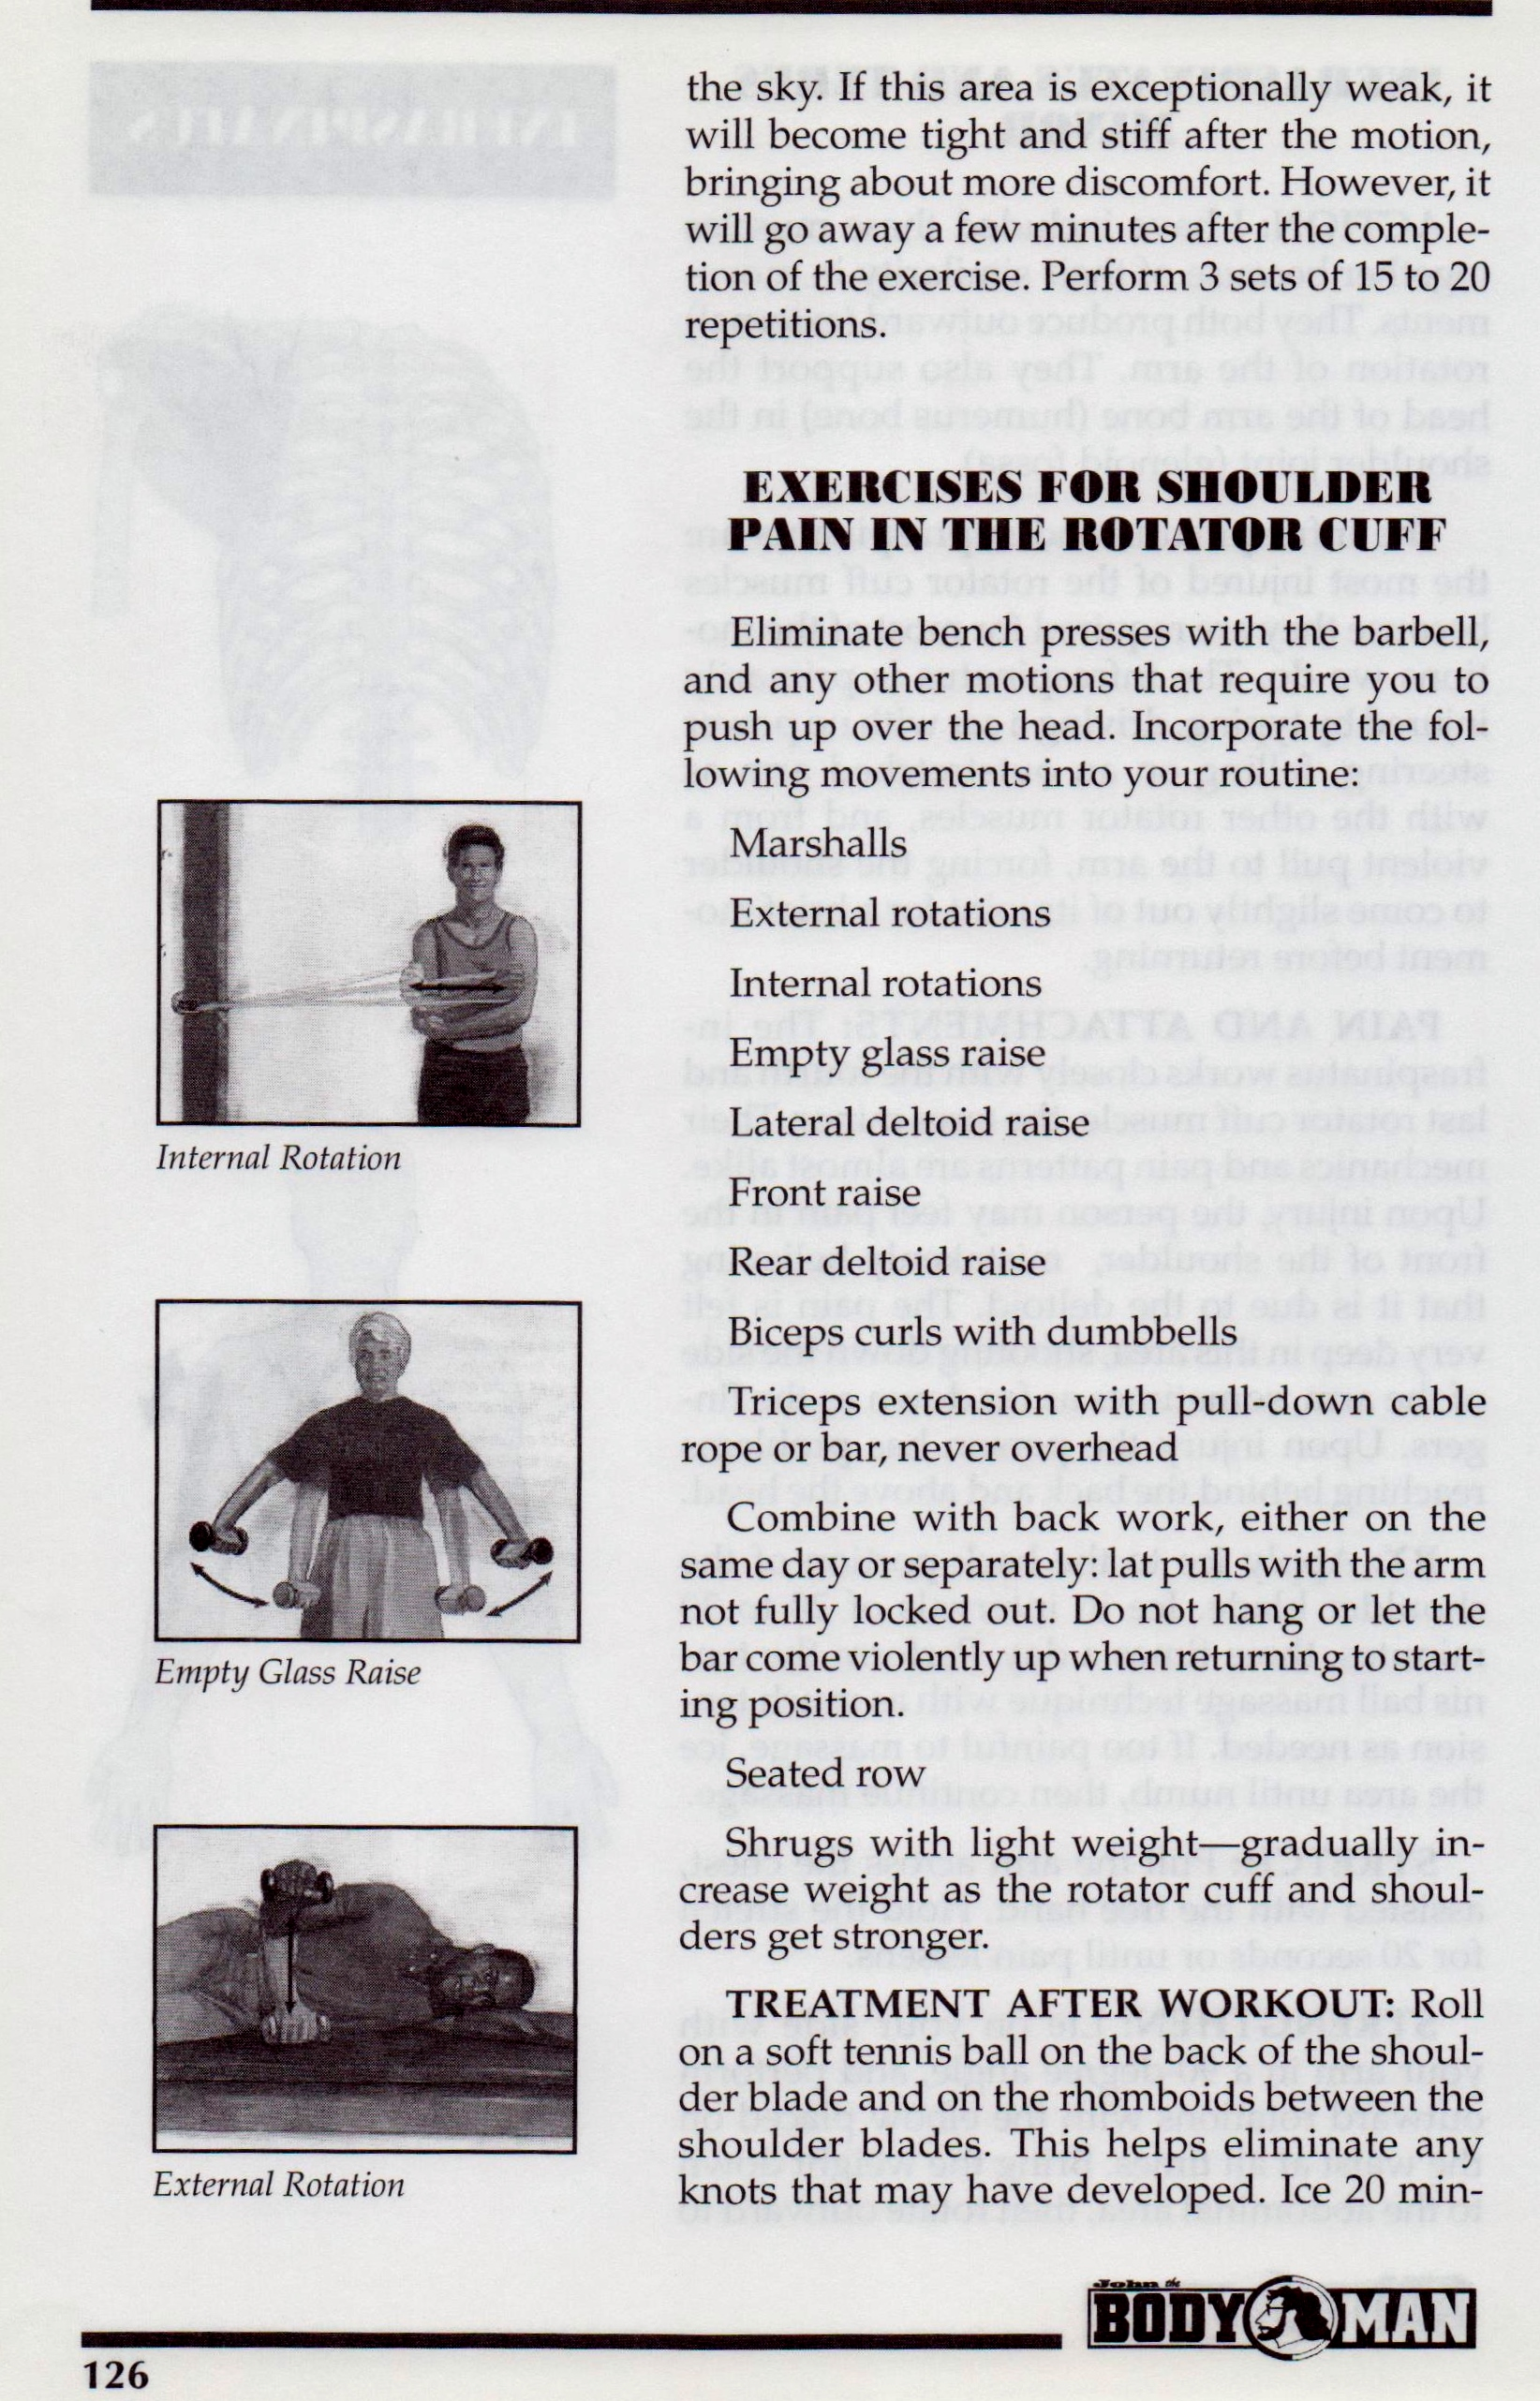 {Rotator Cuff Exercises p 126}